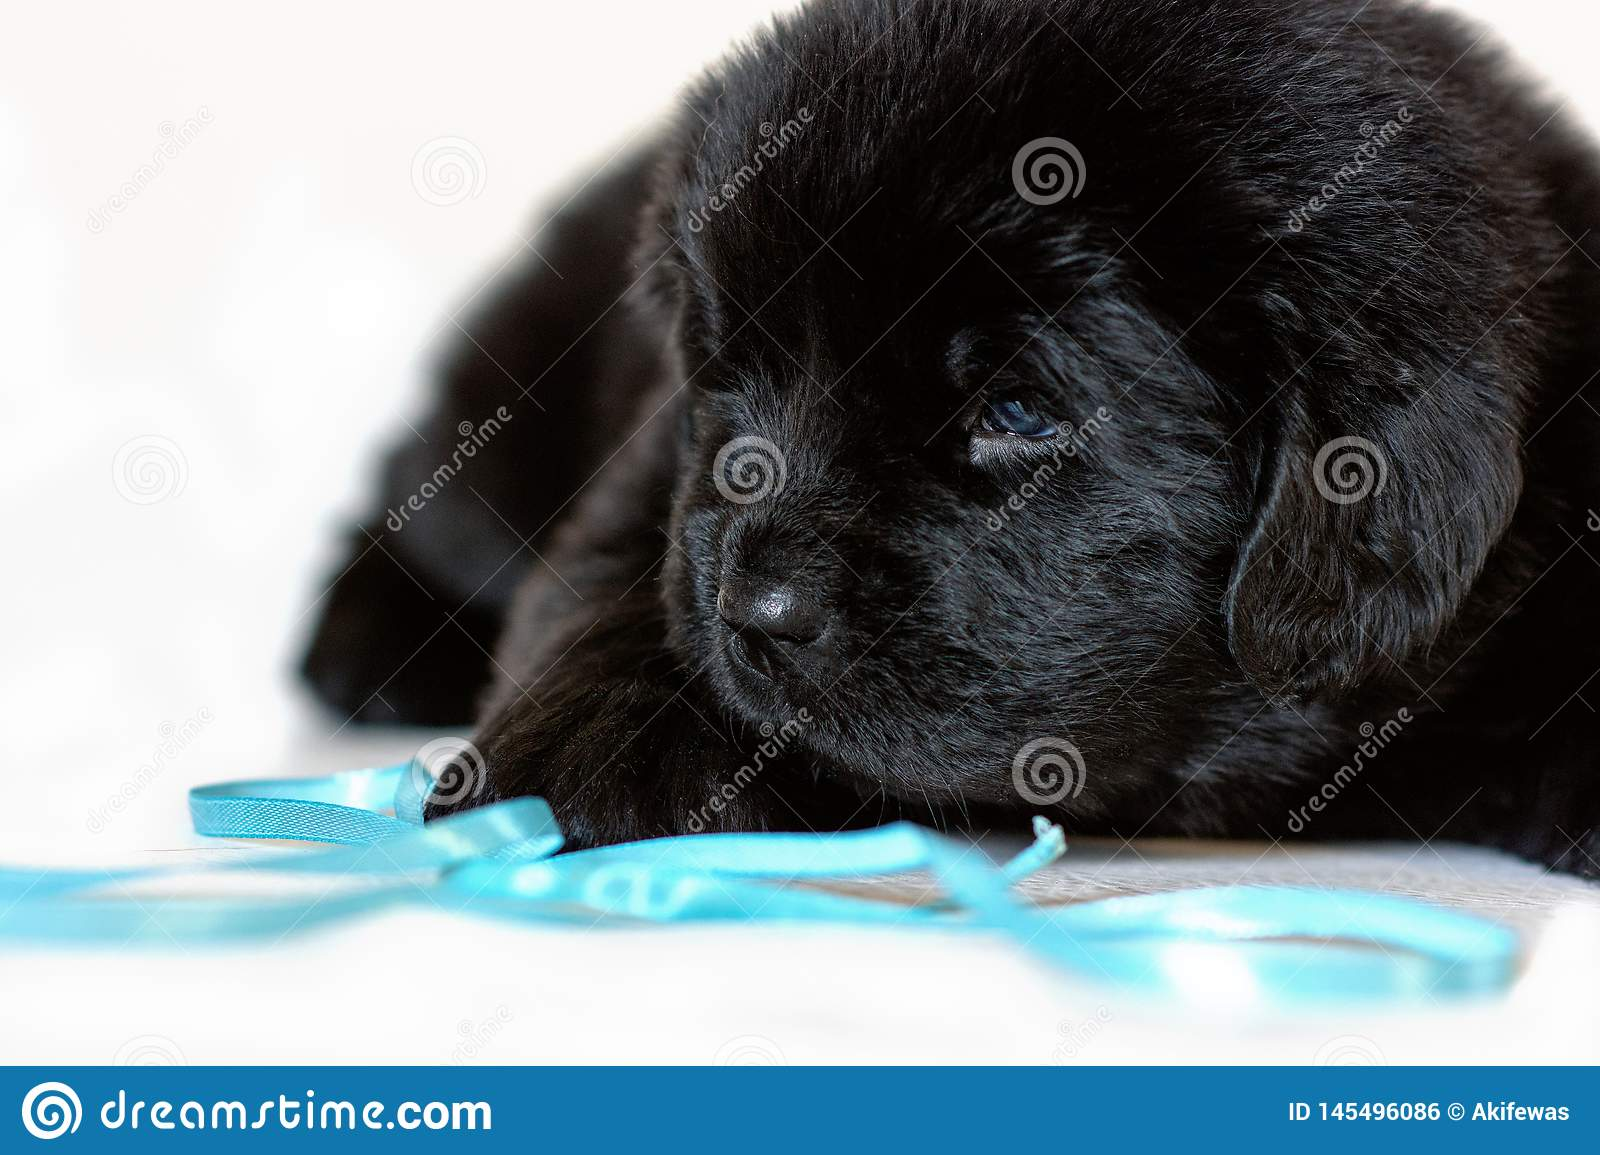 The Newfoundland puppy dog lies sad, on a white background